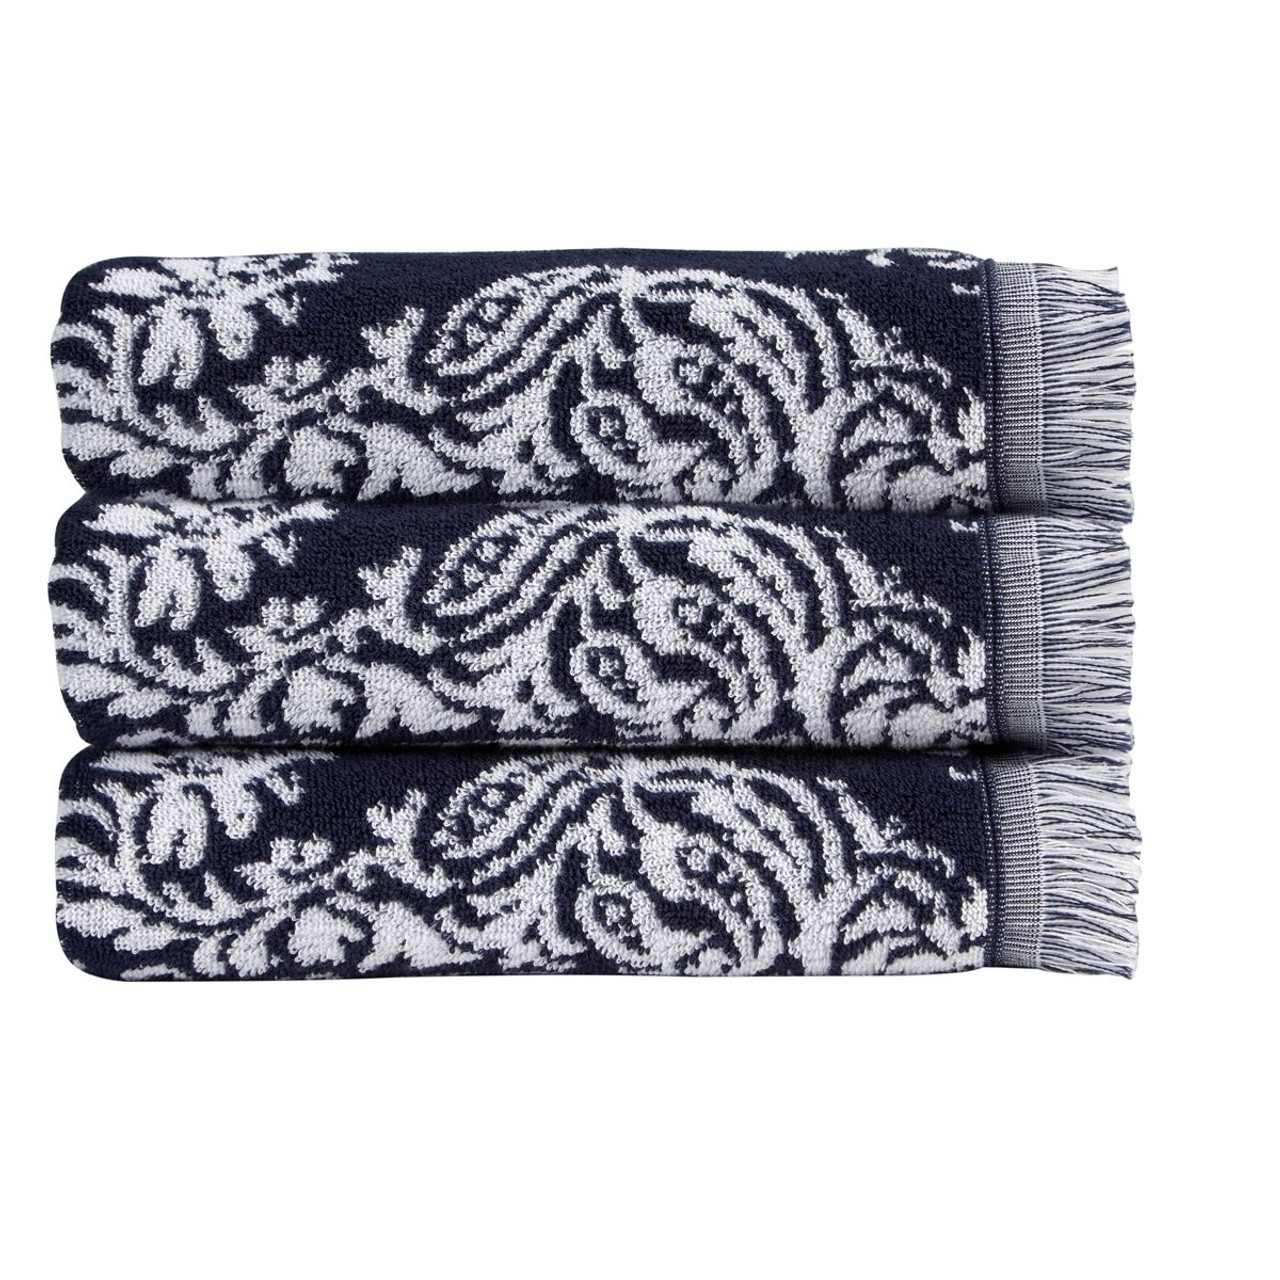 Christy Siam Block Print Towels in Midnight